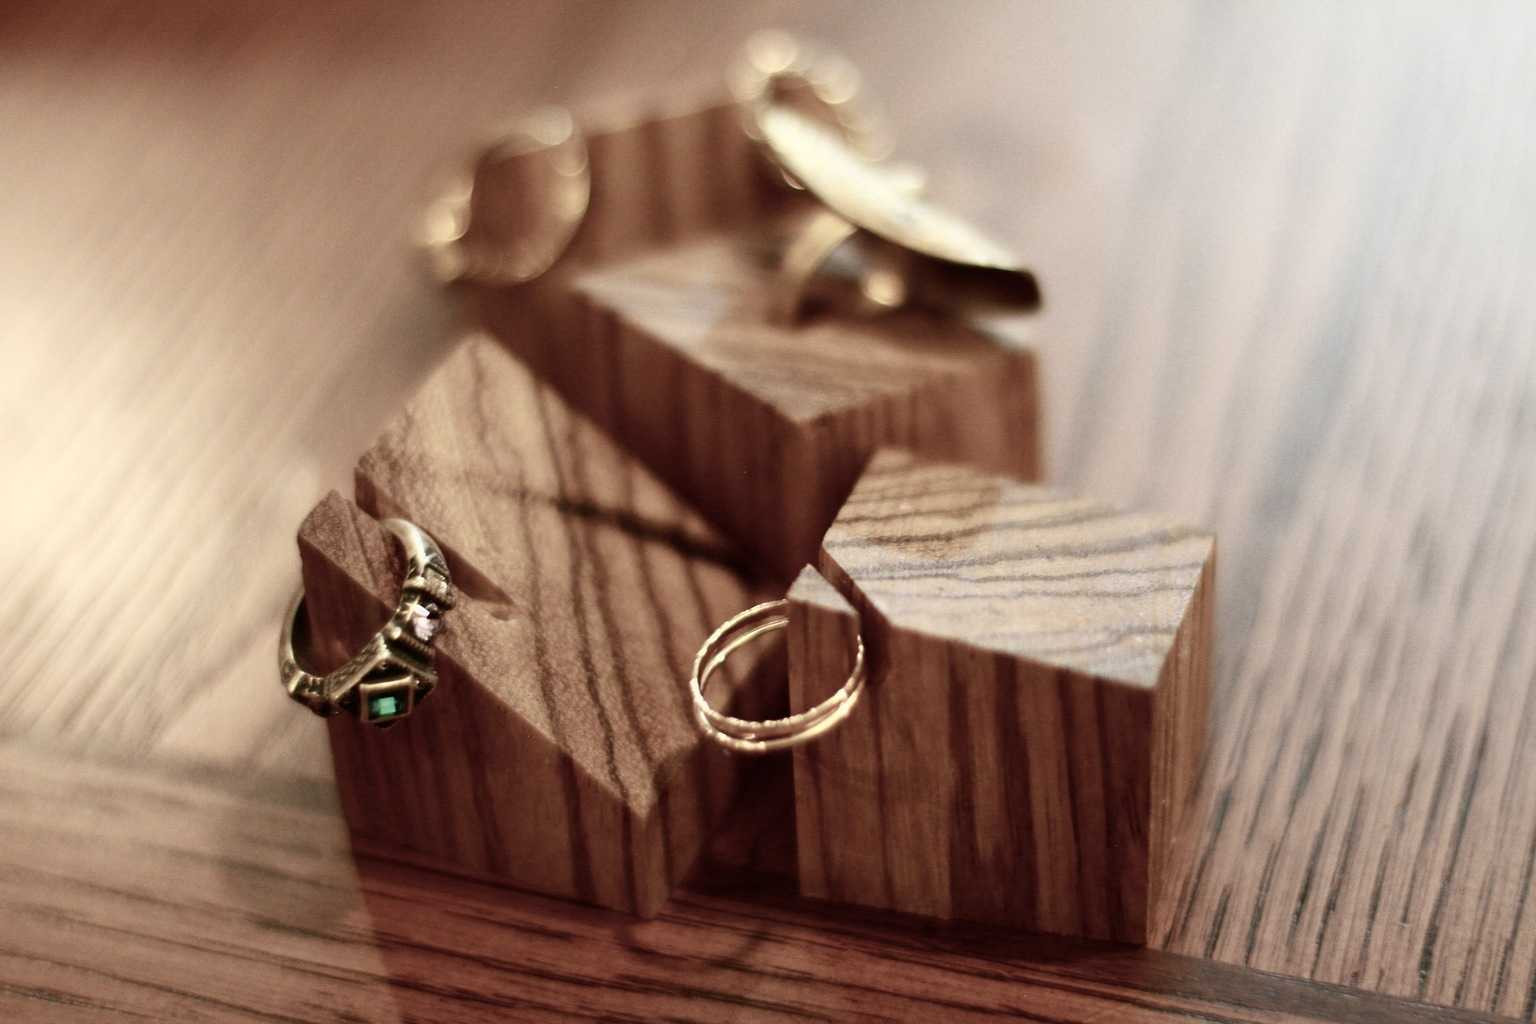 Best ideas about DIY Christmas Gifts For Girlfriend . Save or Pin 31 Thoughtful Homemade Gifts for Your Girlfriend Now.